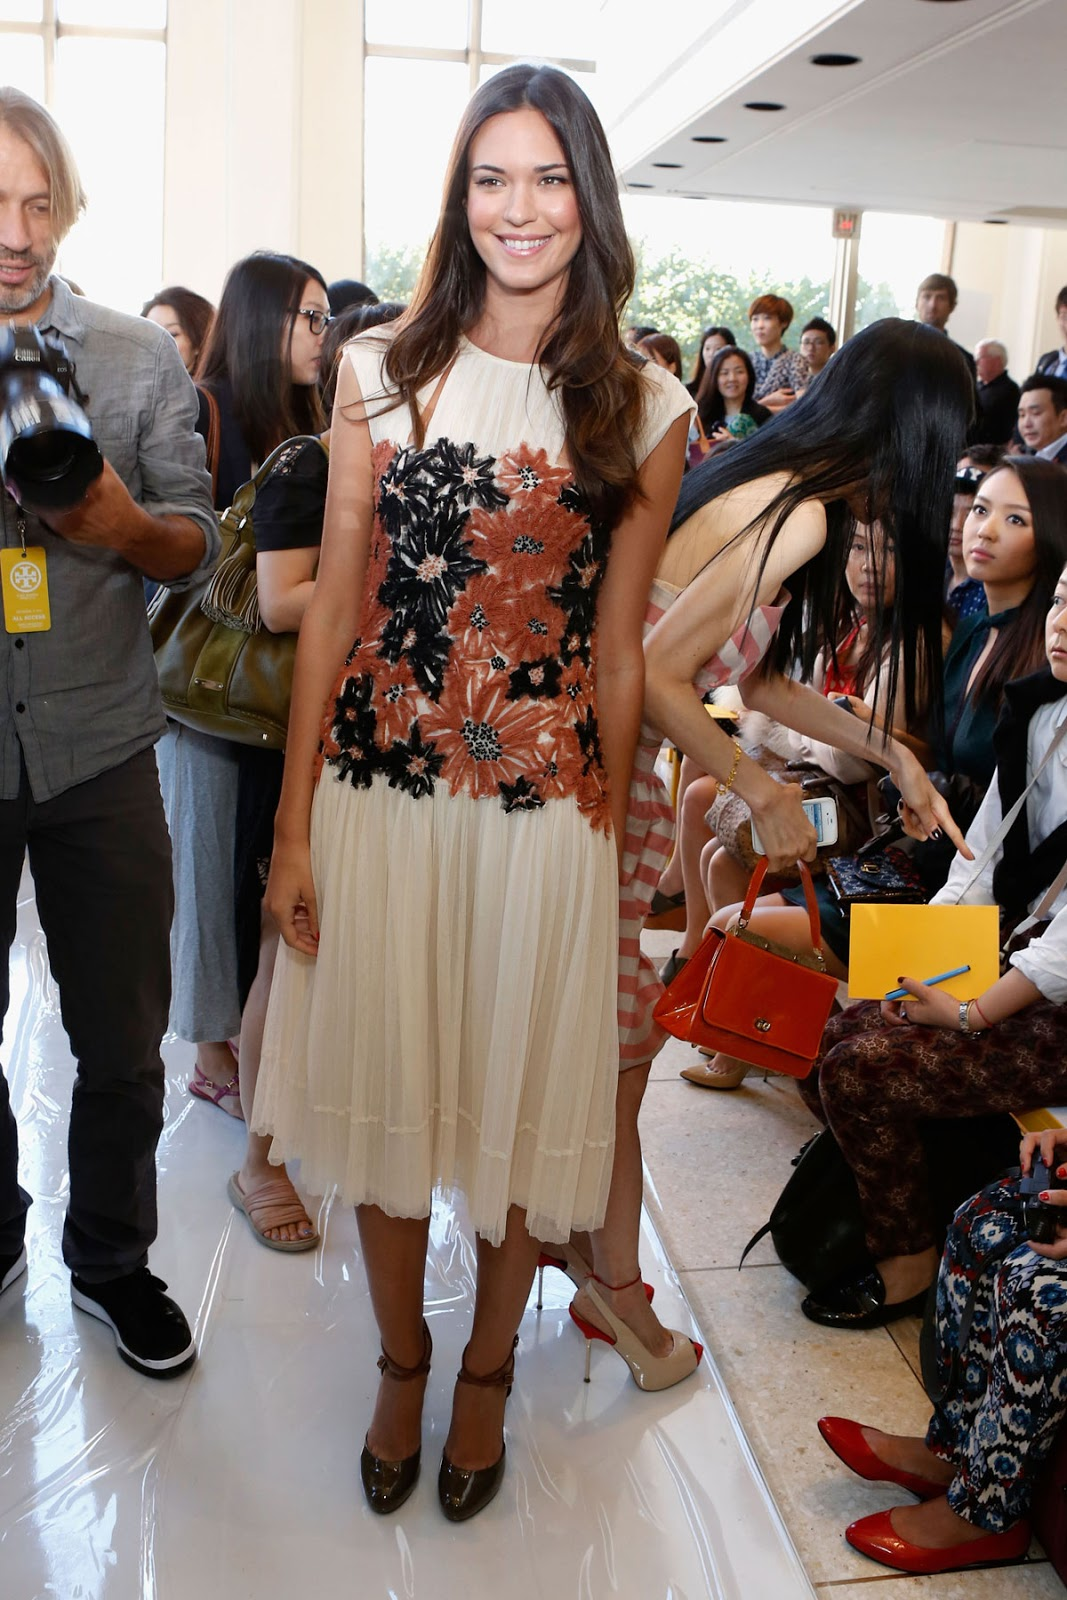 4K Wallpapers of Odette Annable At Tory Burch Fashion Show In New York